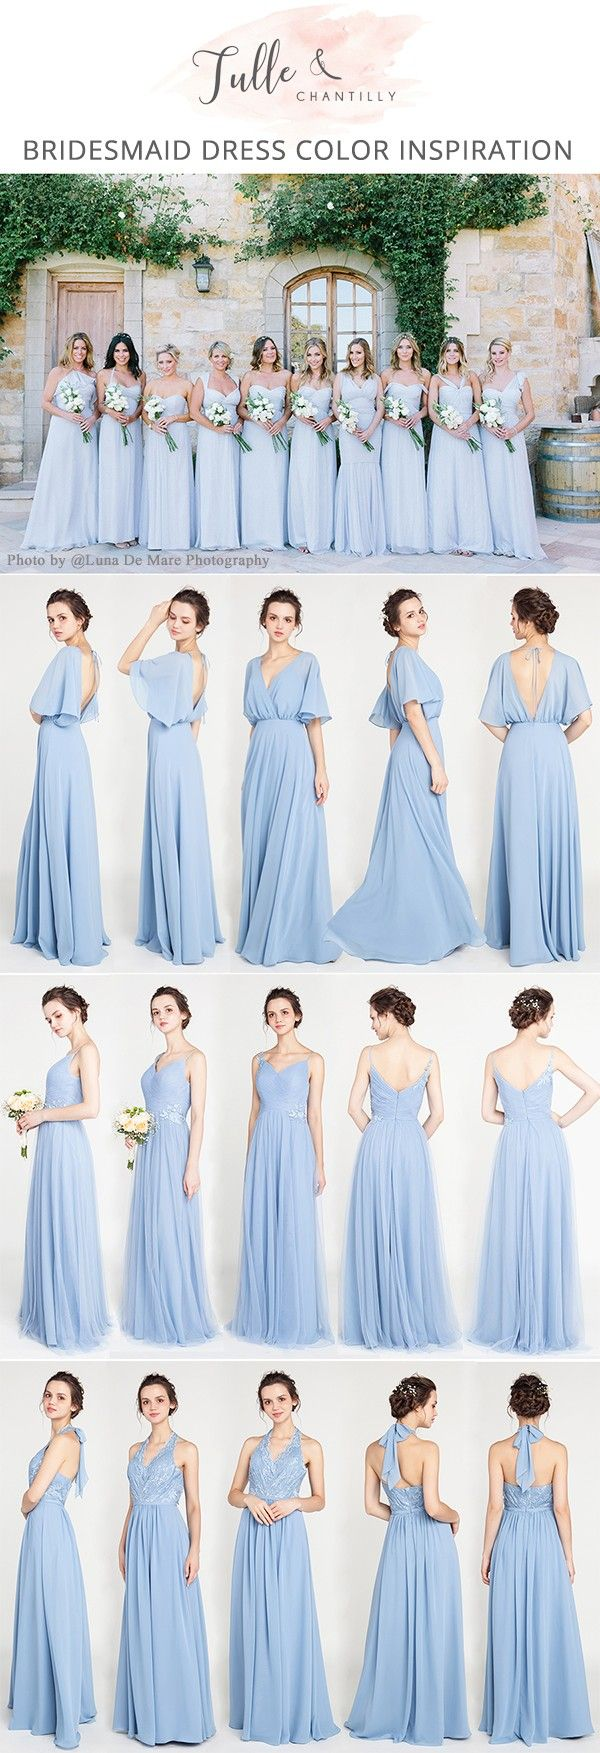 Best 25+ Light blue dresses ideas on Pinterest | Light ...